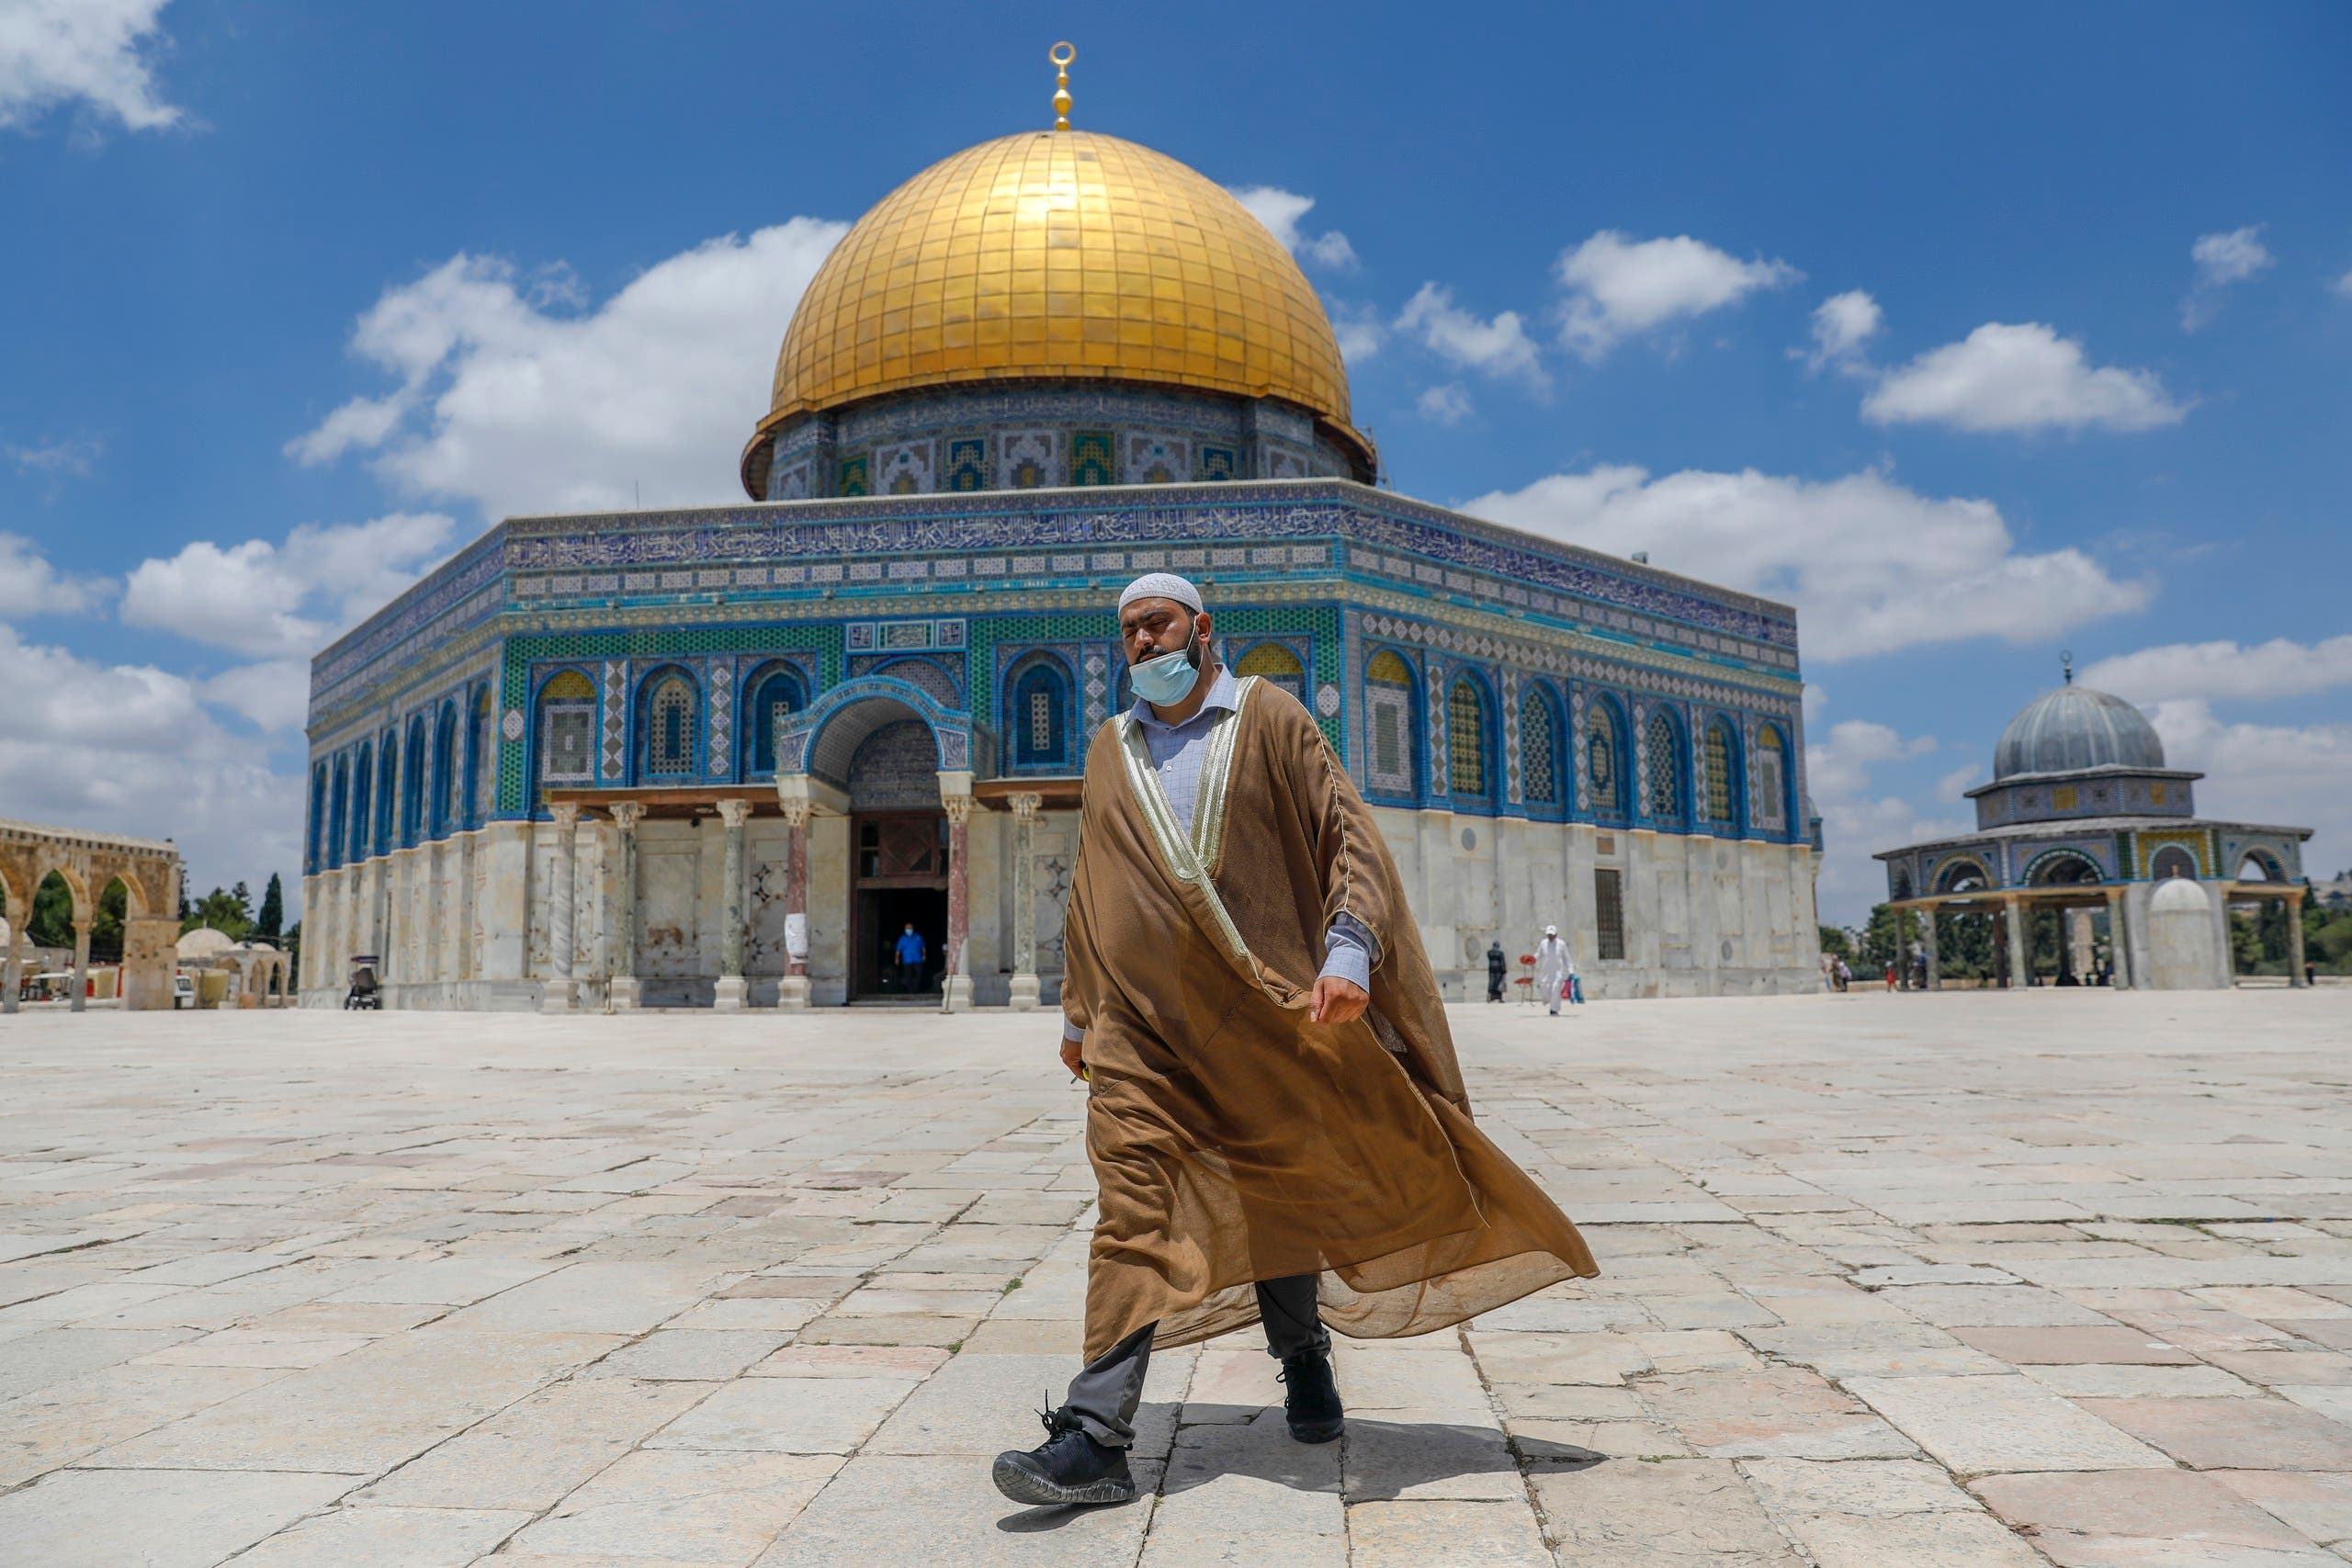 A Palestinian man walks outside the Dome of the Rock Mosque in Jerusalem's al-Aqsa compound on July 9, 2020. (AFP)